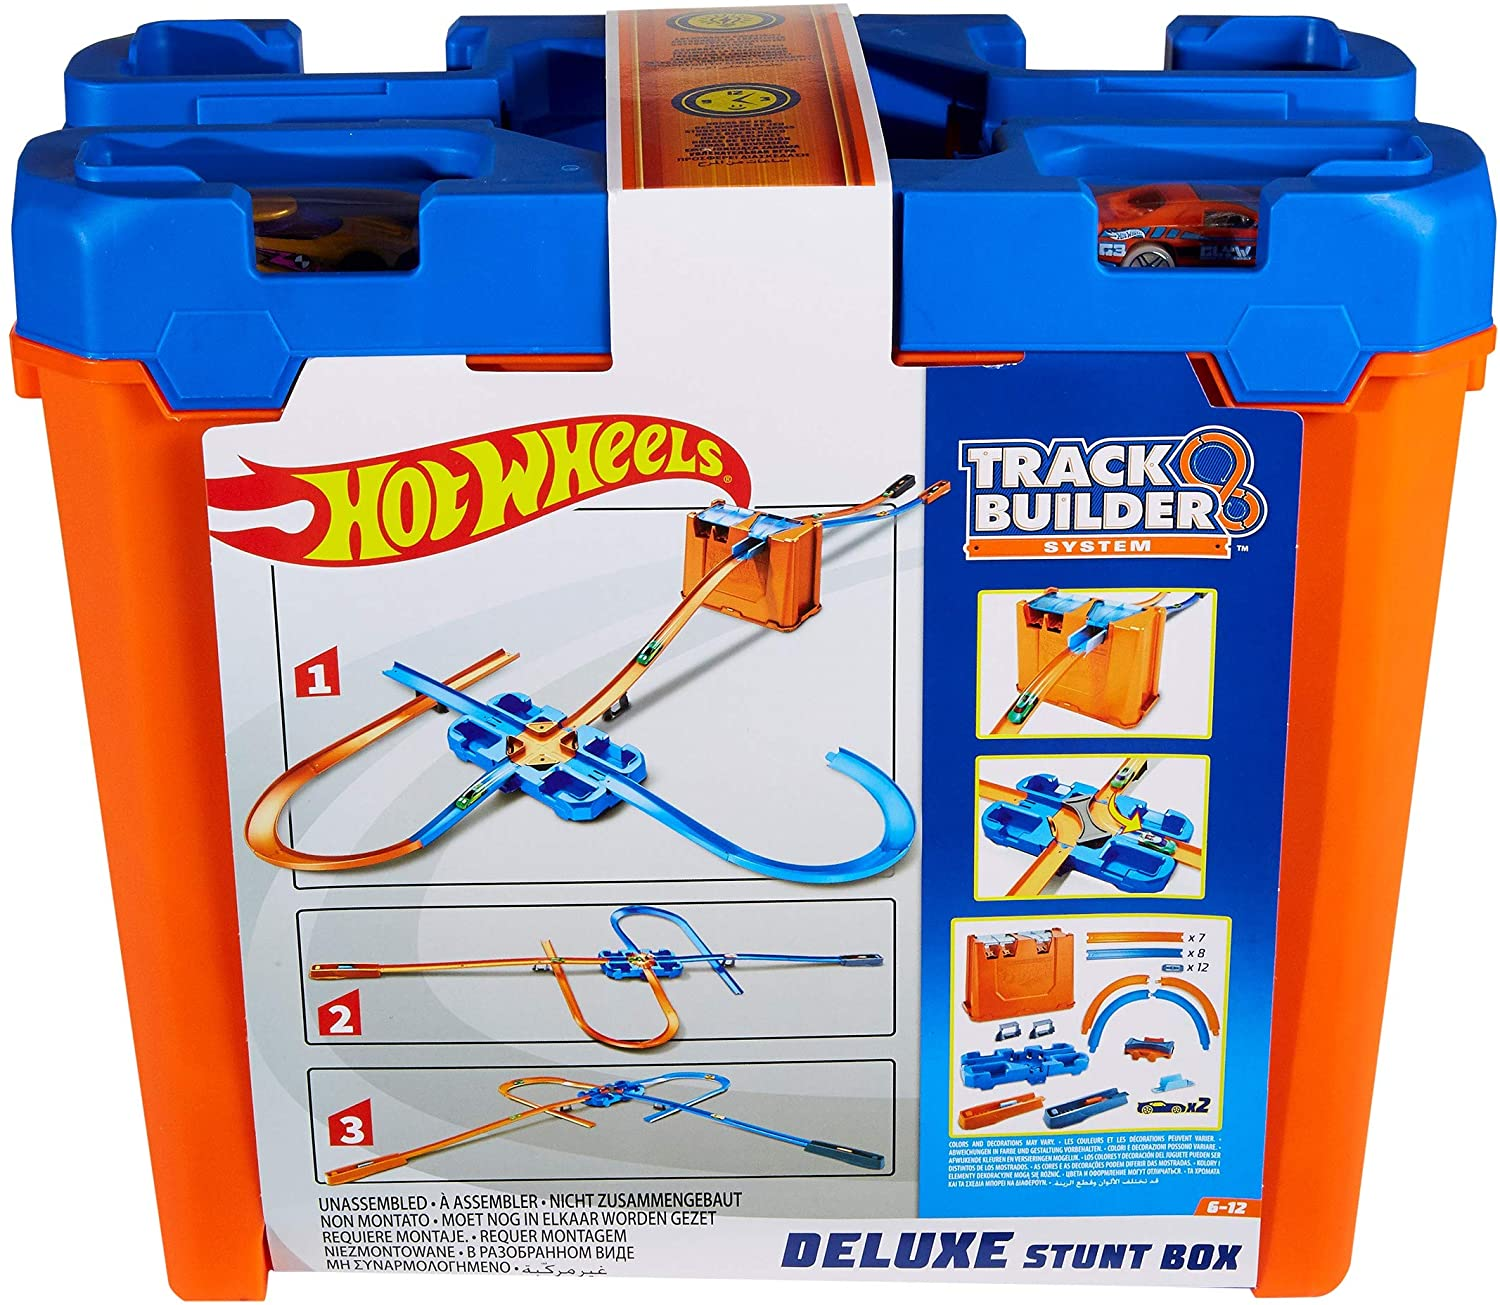 Hot Wheels - Caixa de Manobra Deluxe